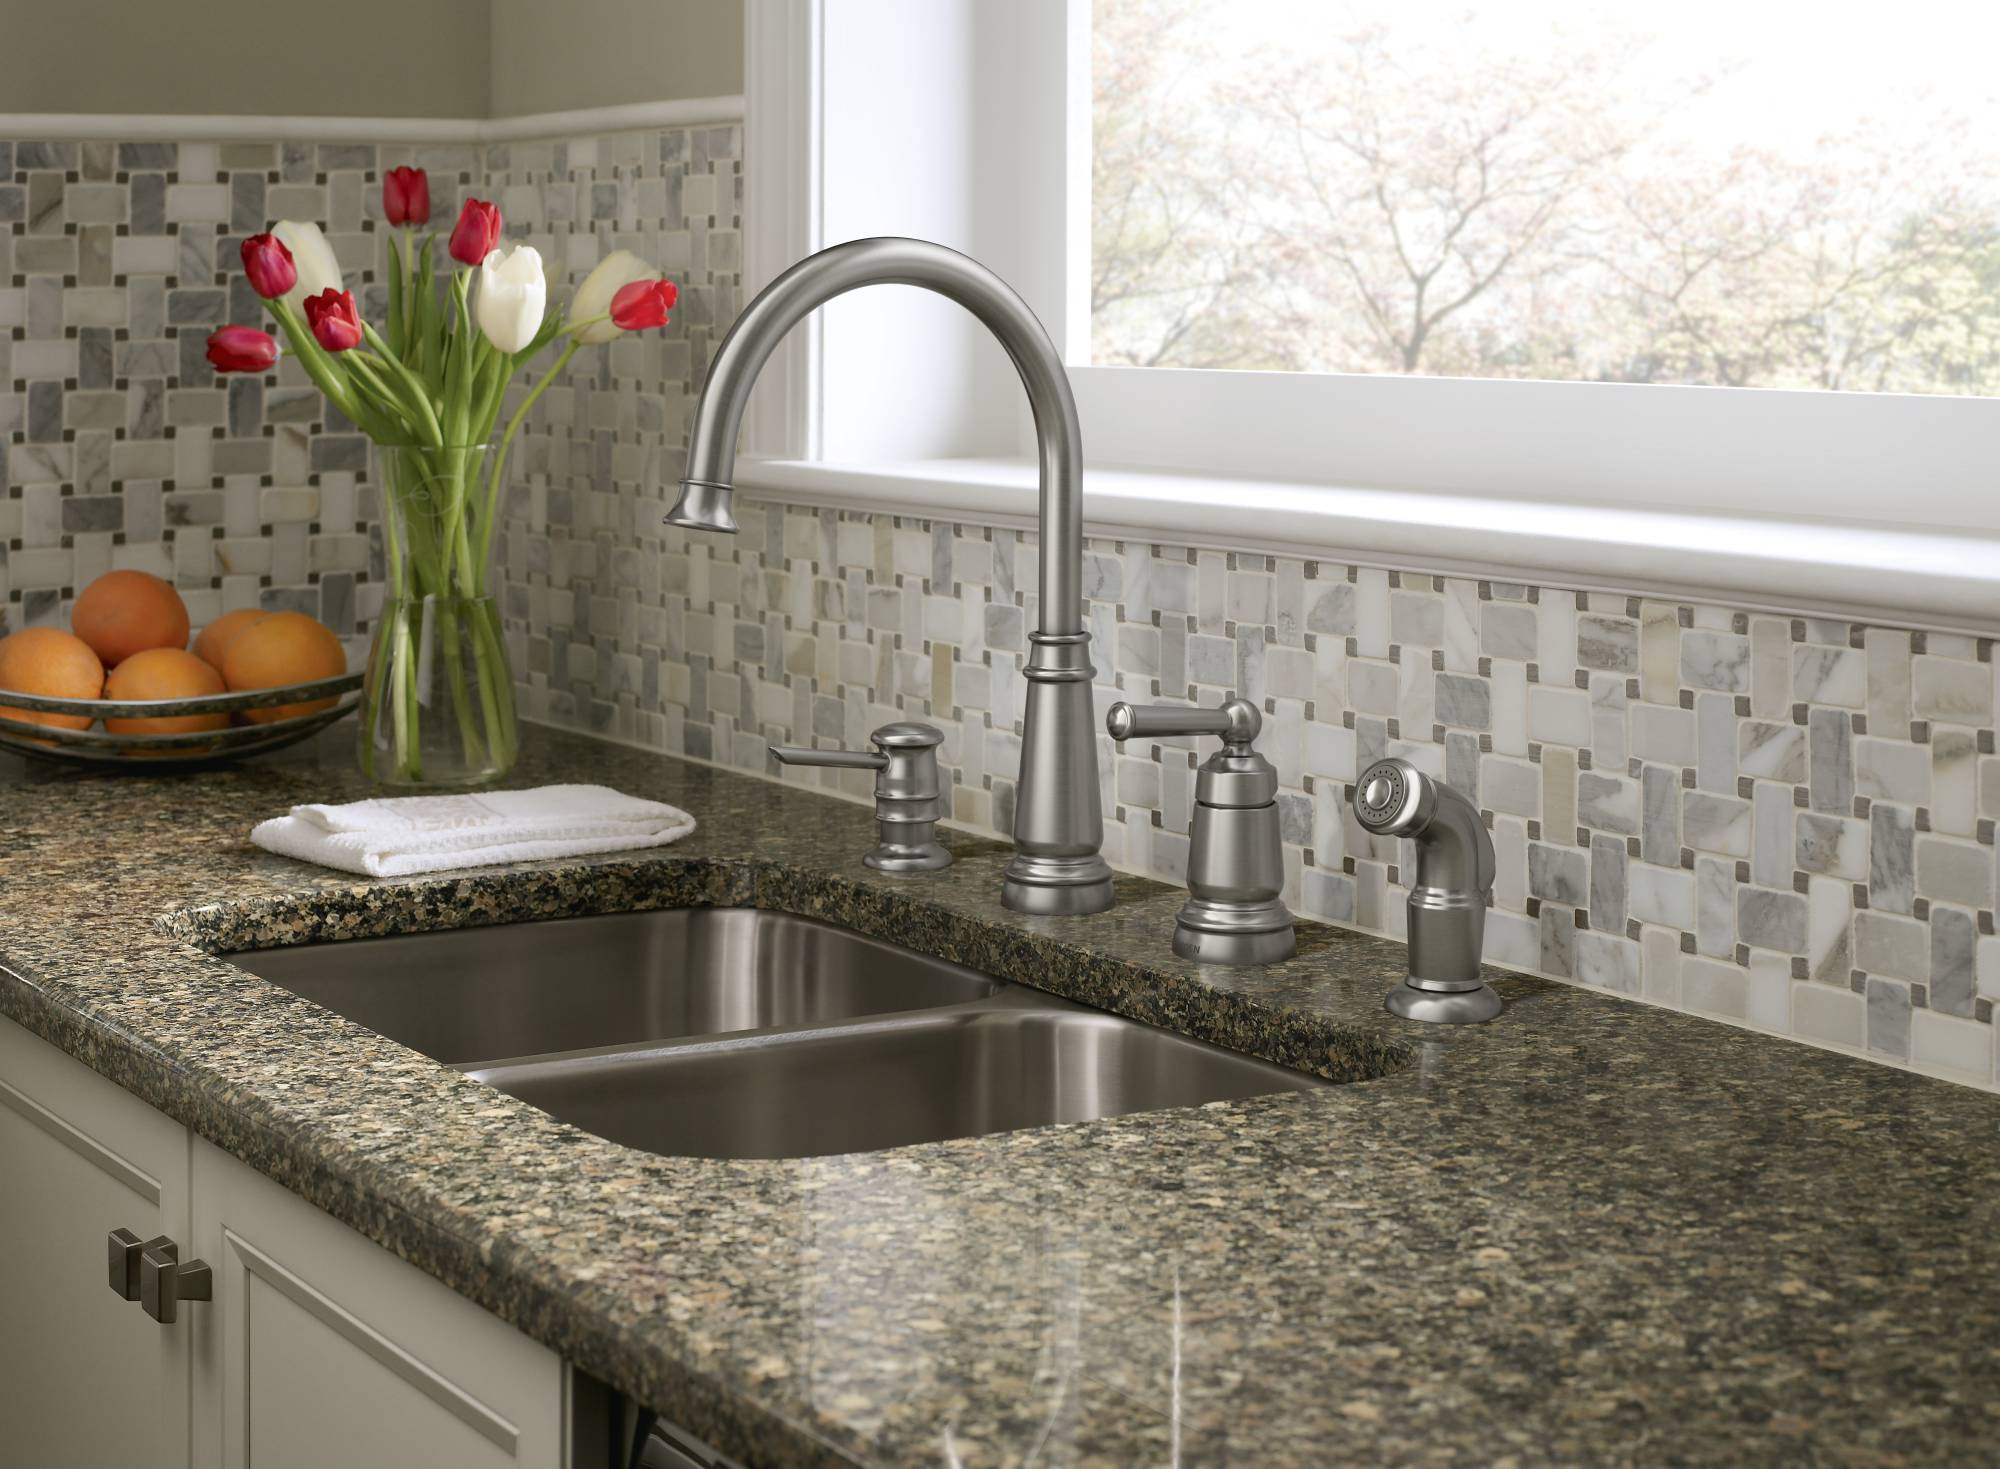 Moen Introduces Three New Kitchen Collections And Expands Existing - New kitchen faucet